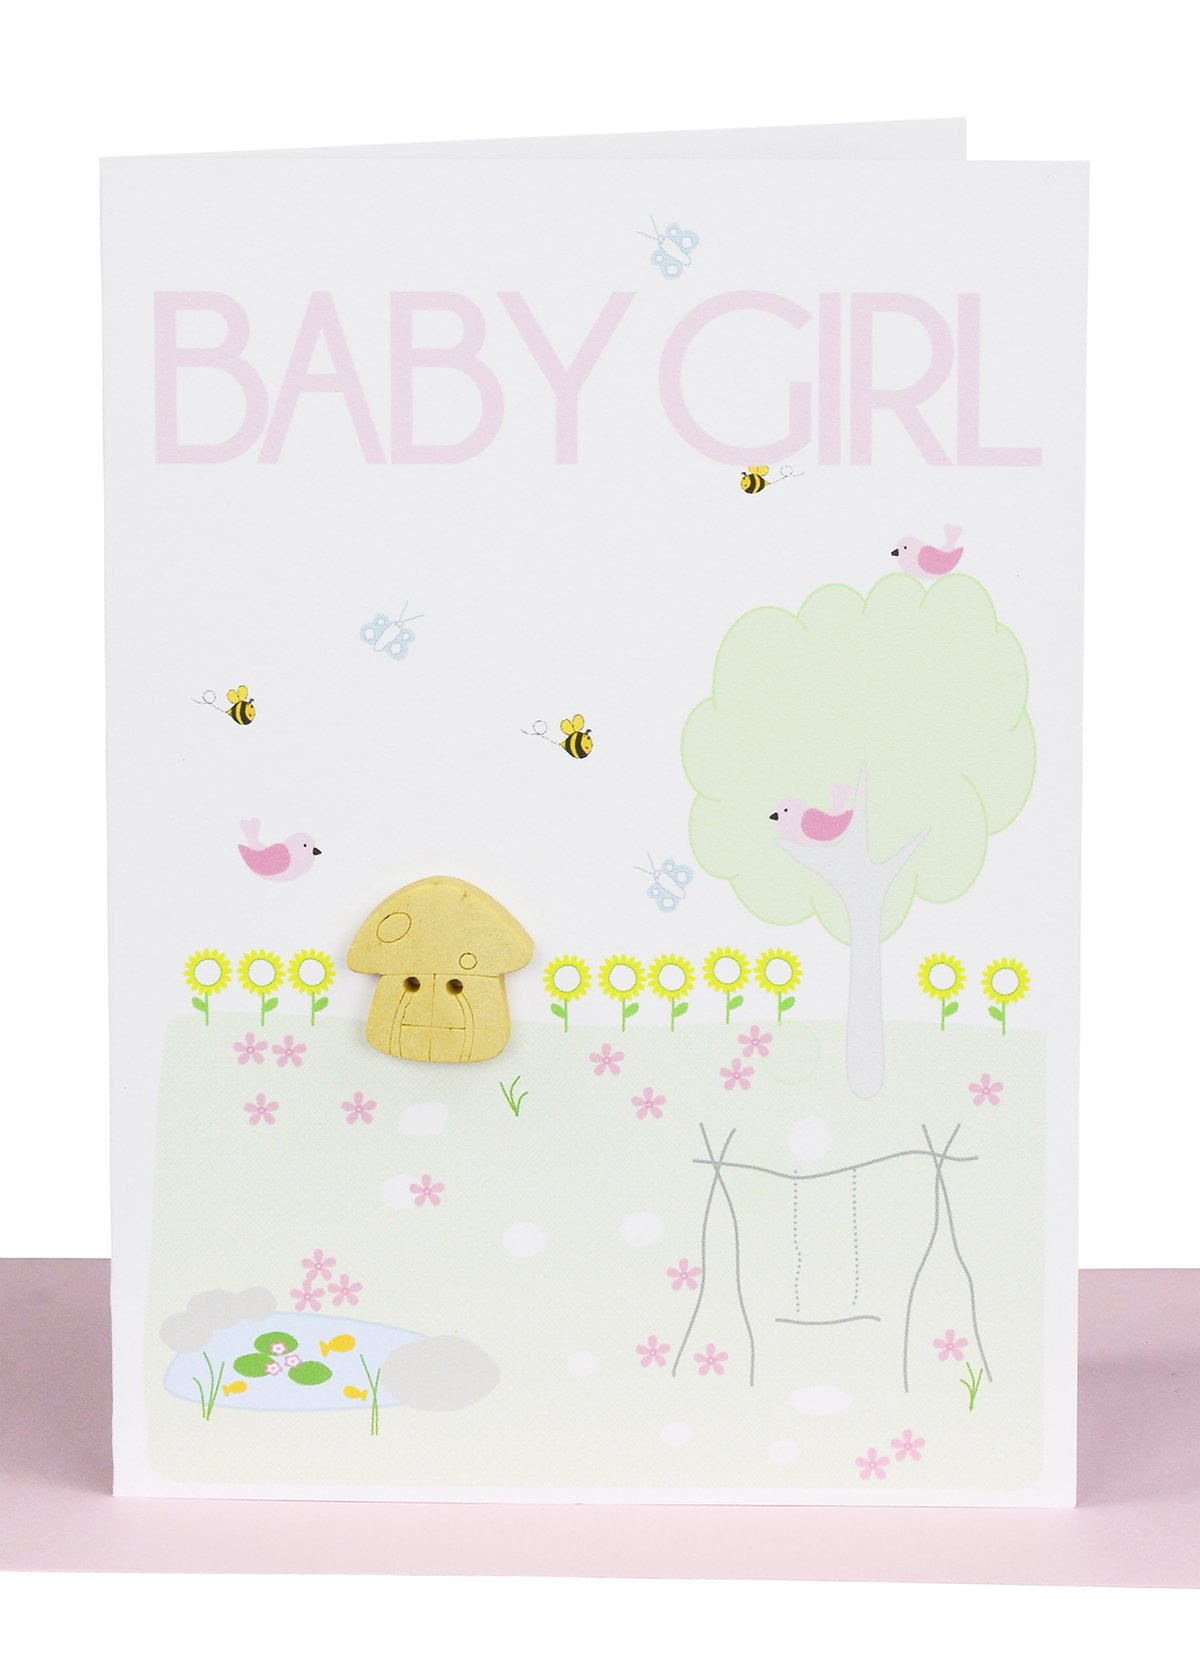 Baby girl greeting card fairy garden lils cards handmade handmade baby girl greeting card embellished with a small wooden fairy mushroom in a surrounding garden kristyandbryce Images